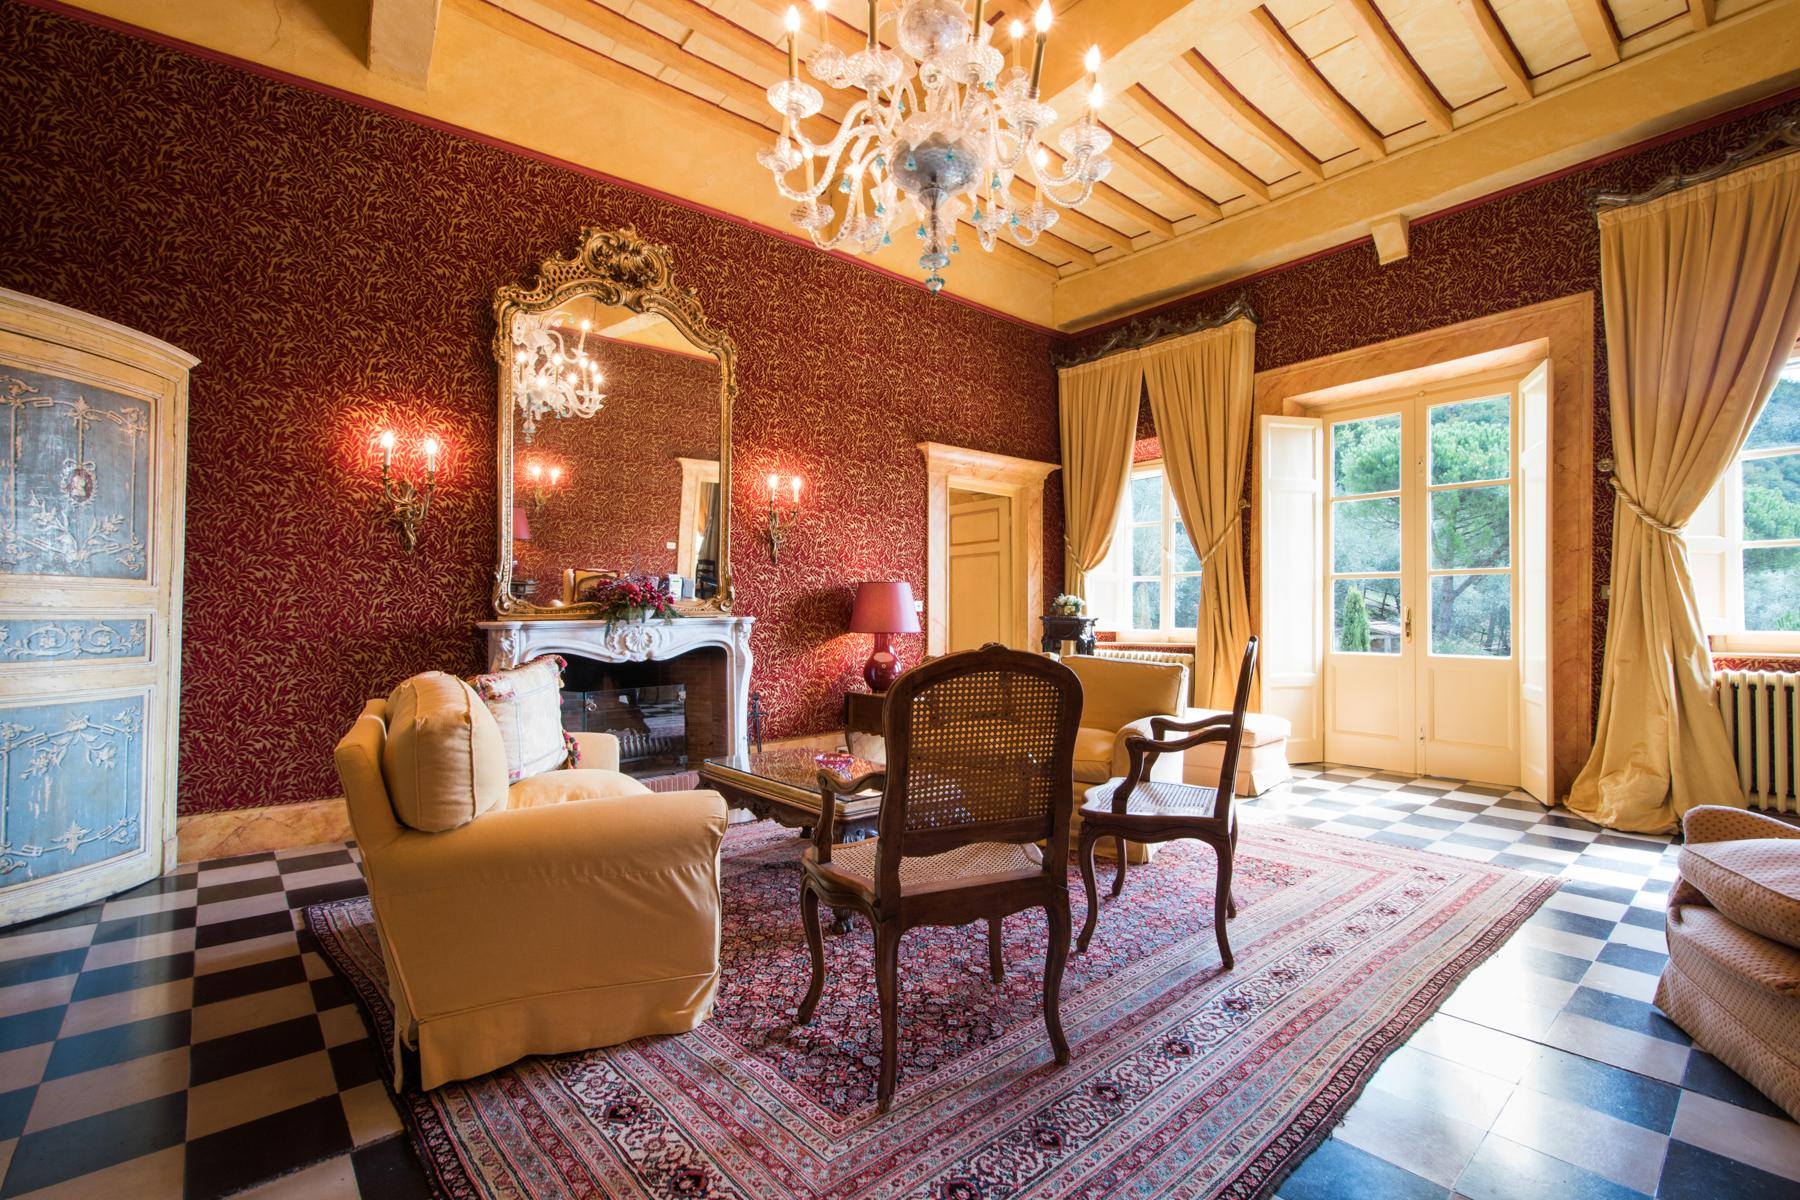 Marvelous villa in the countryside of Lucca - 8